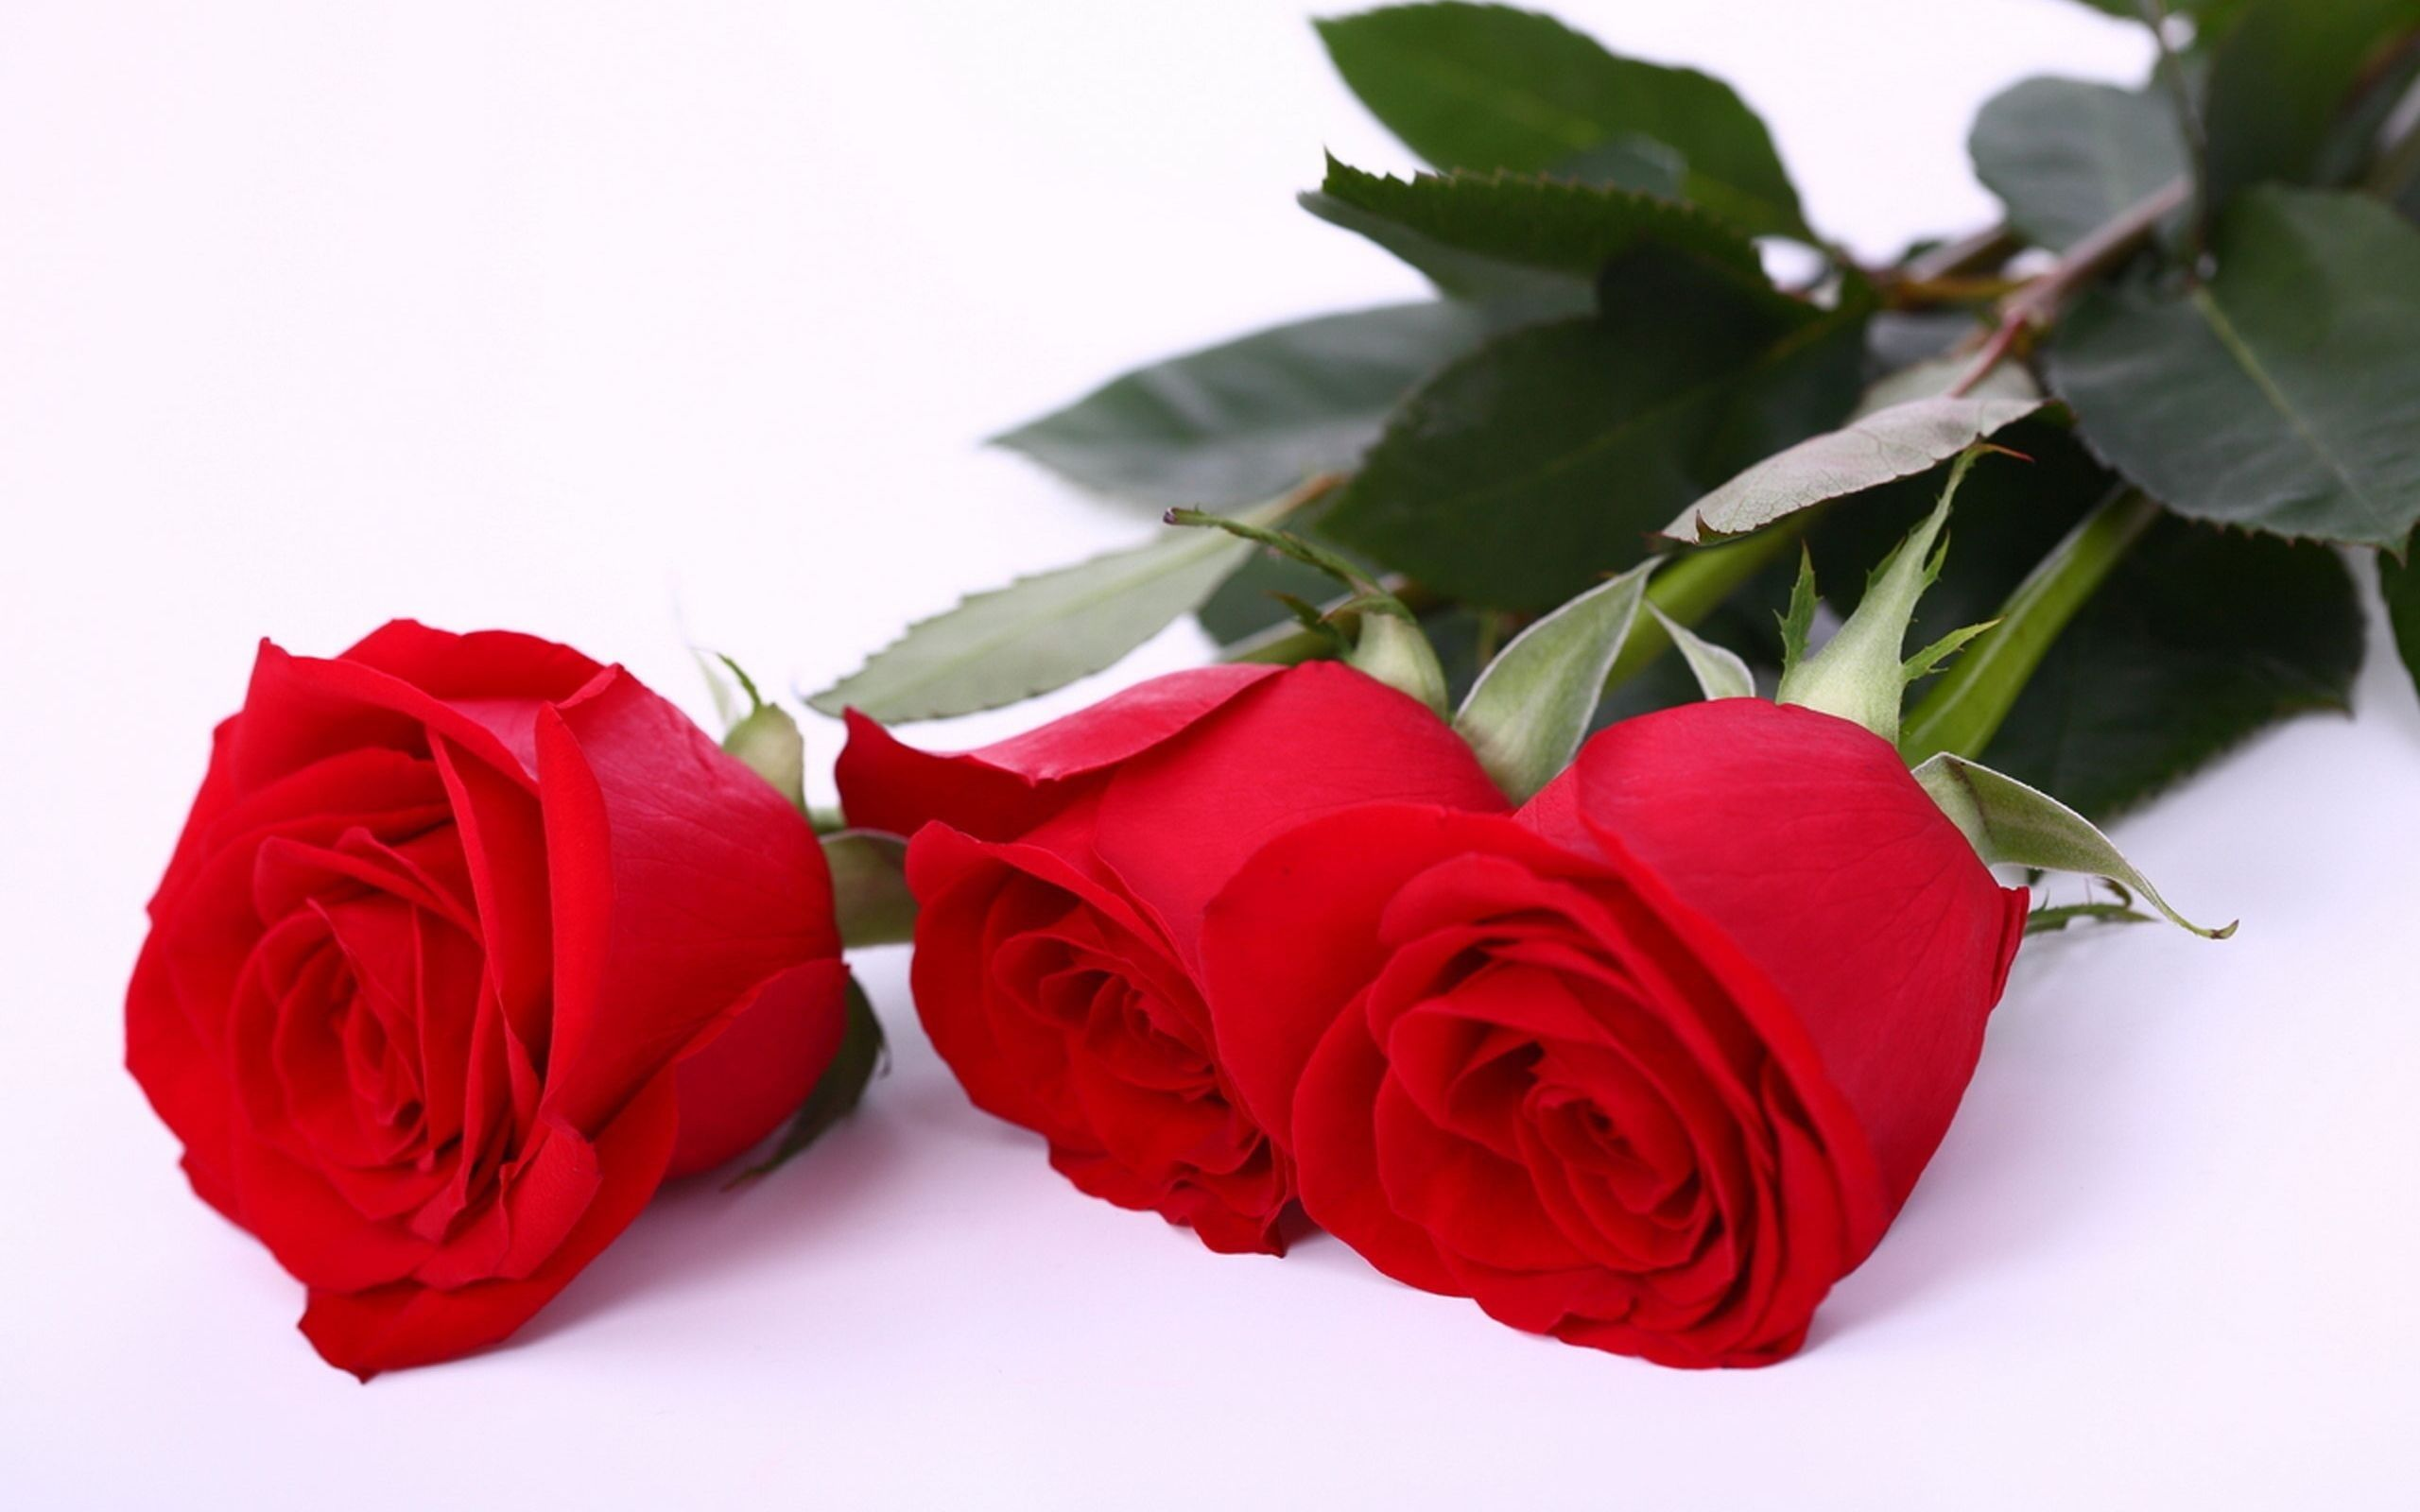 Beautiful Red Rose Hd Wallpapers For More Please Visit Etcfn Com